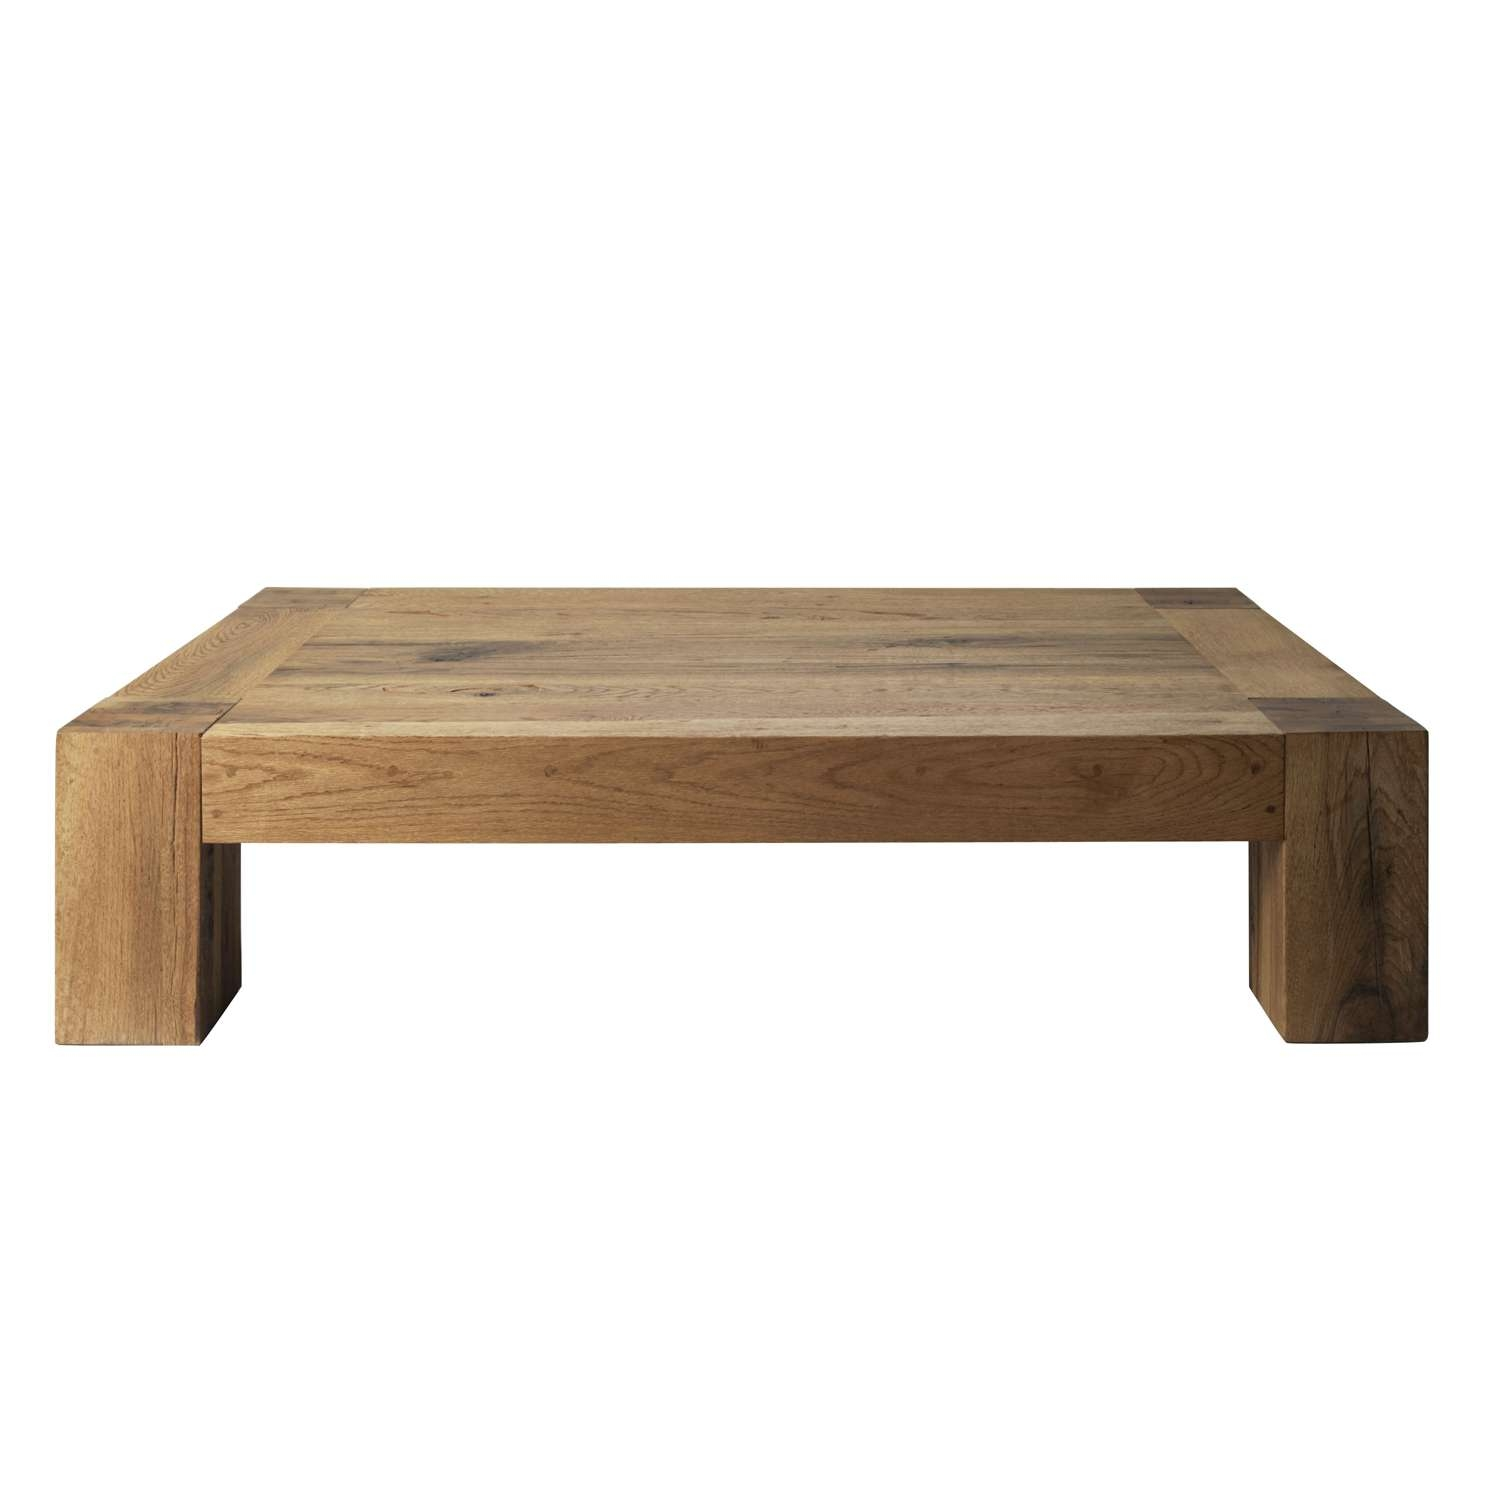 Coffee Table : Awesome City Furniture Coffee Tables Contemporary With Regard To Widely Used Low Square Wooden Coffee Tables (View 4 of 20)